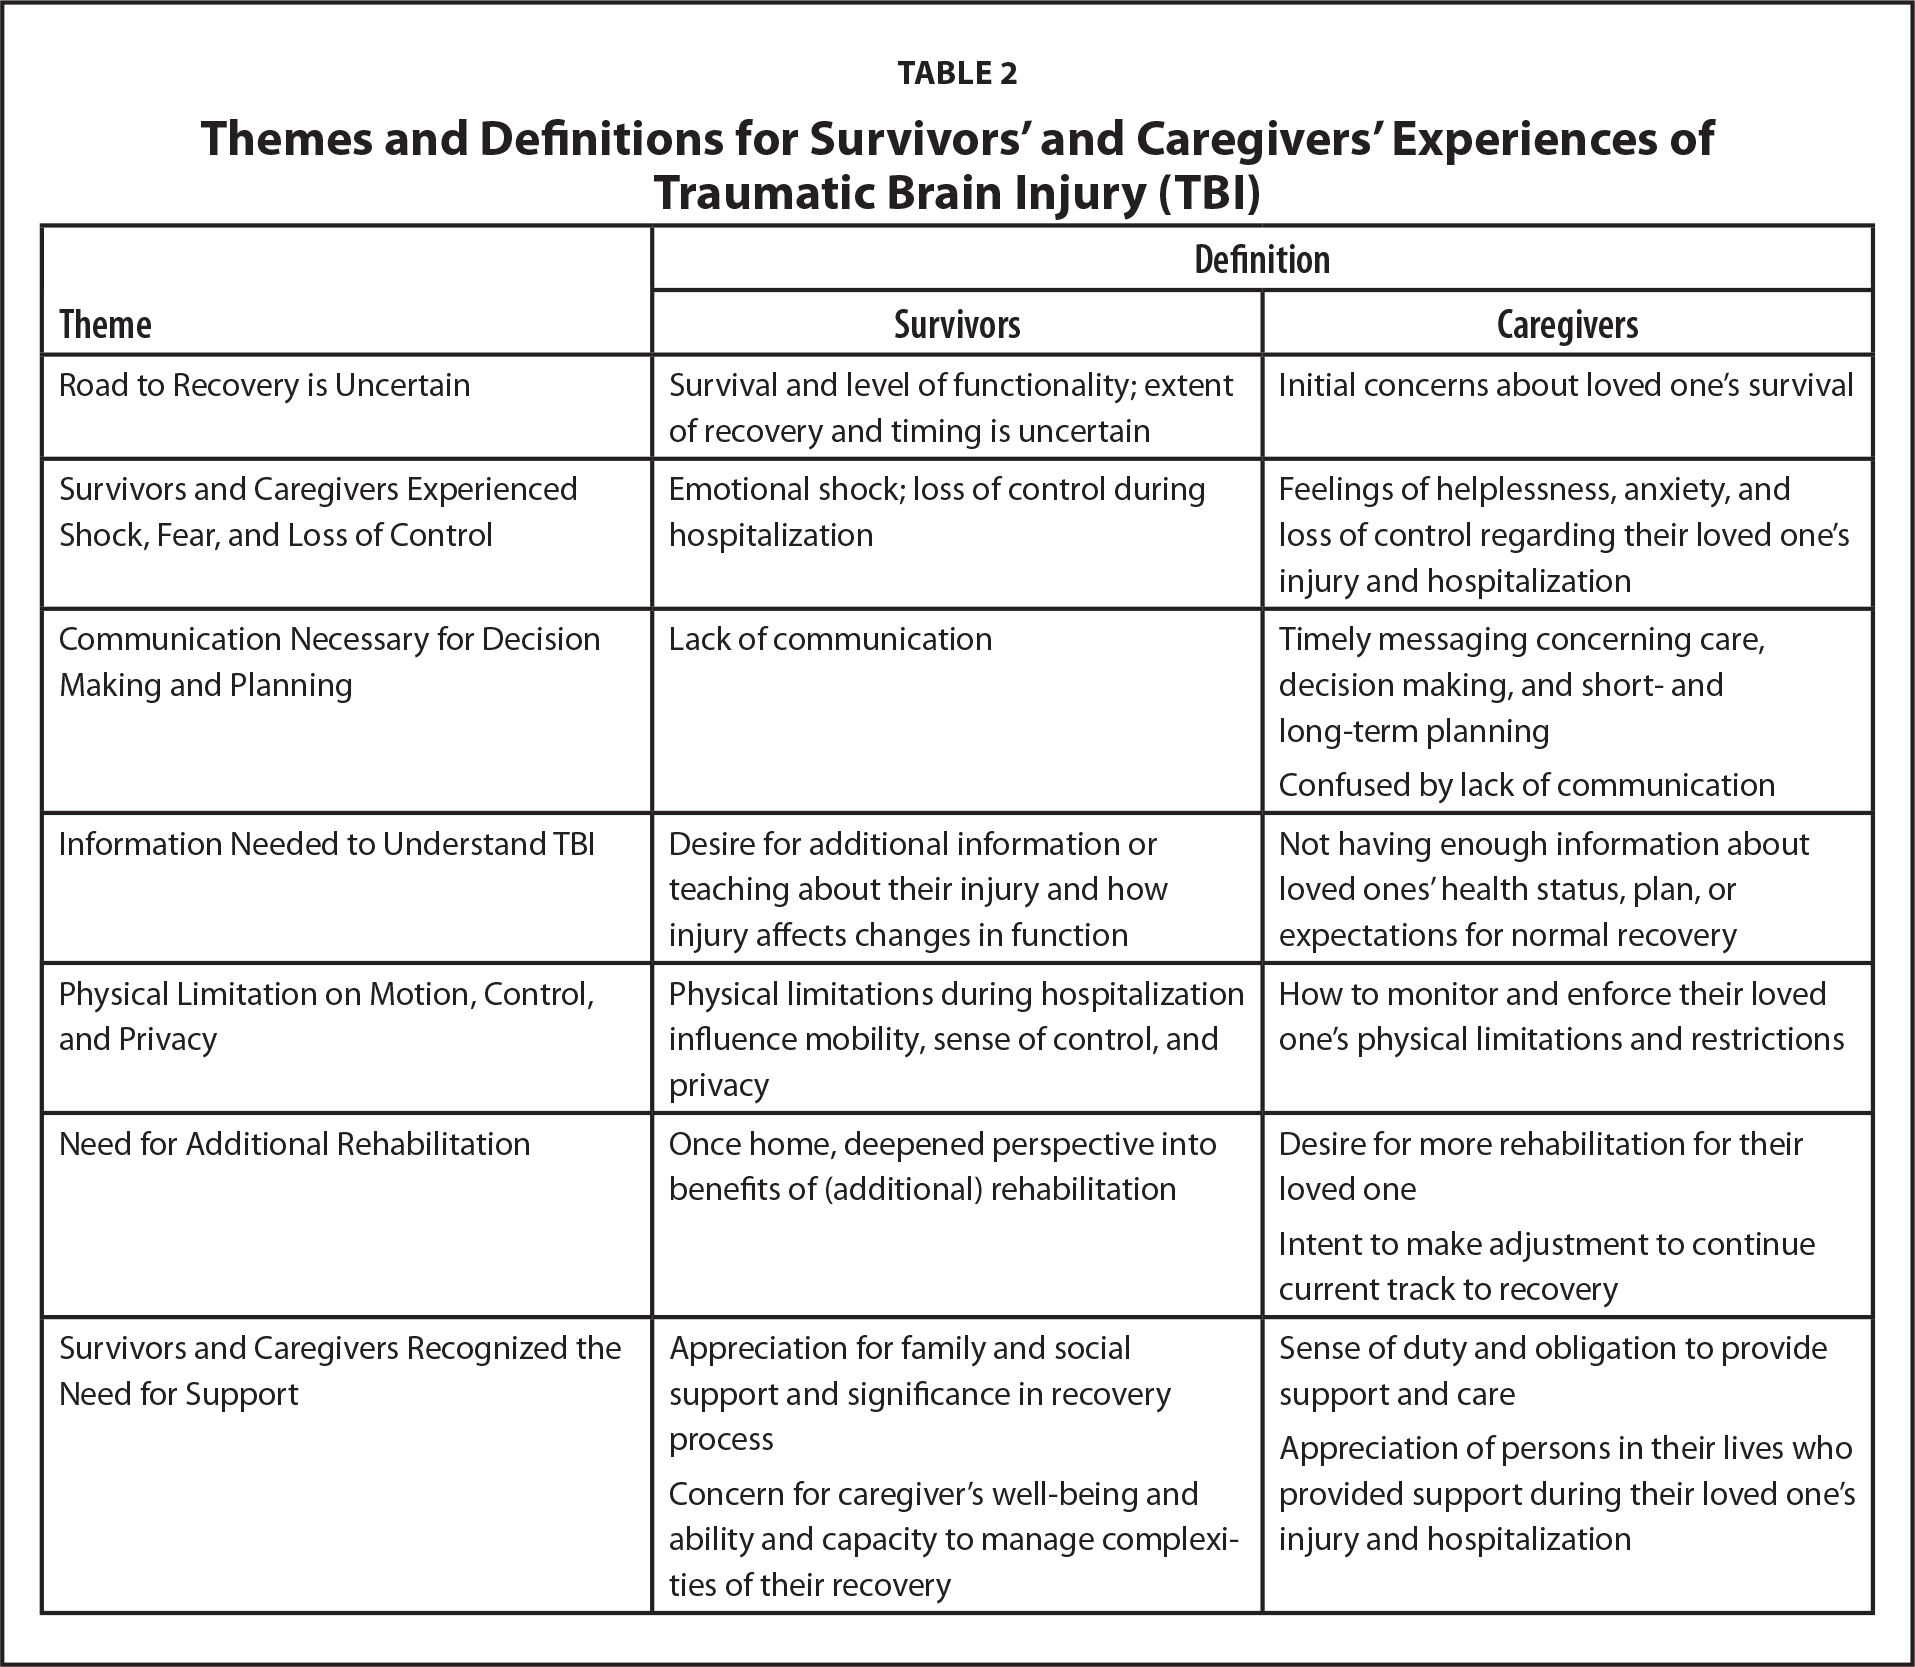 Themes and Definitions for Survivors' and Caregivers' Experiences of Traumatic Brain Injury (TBI)